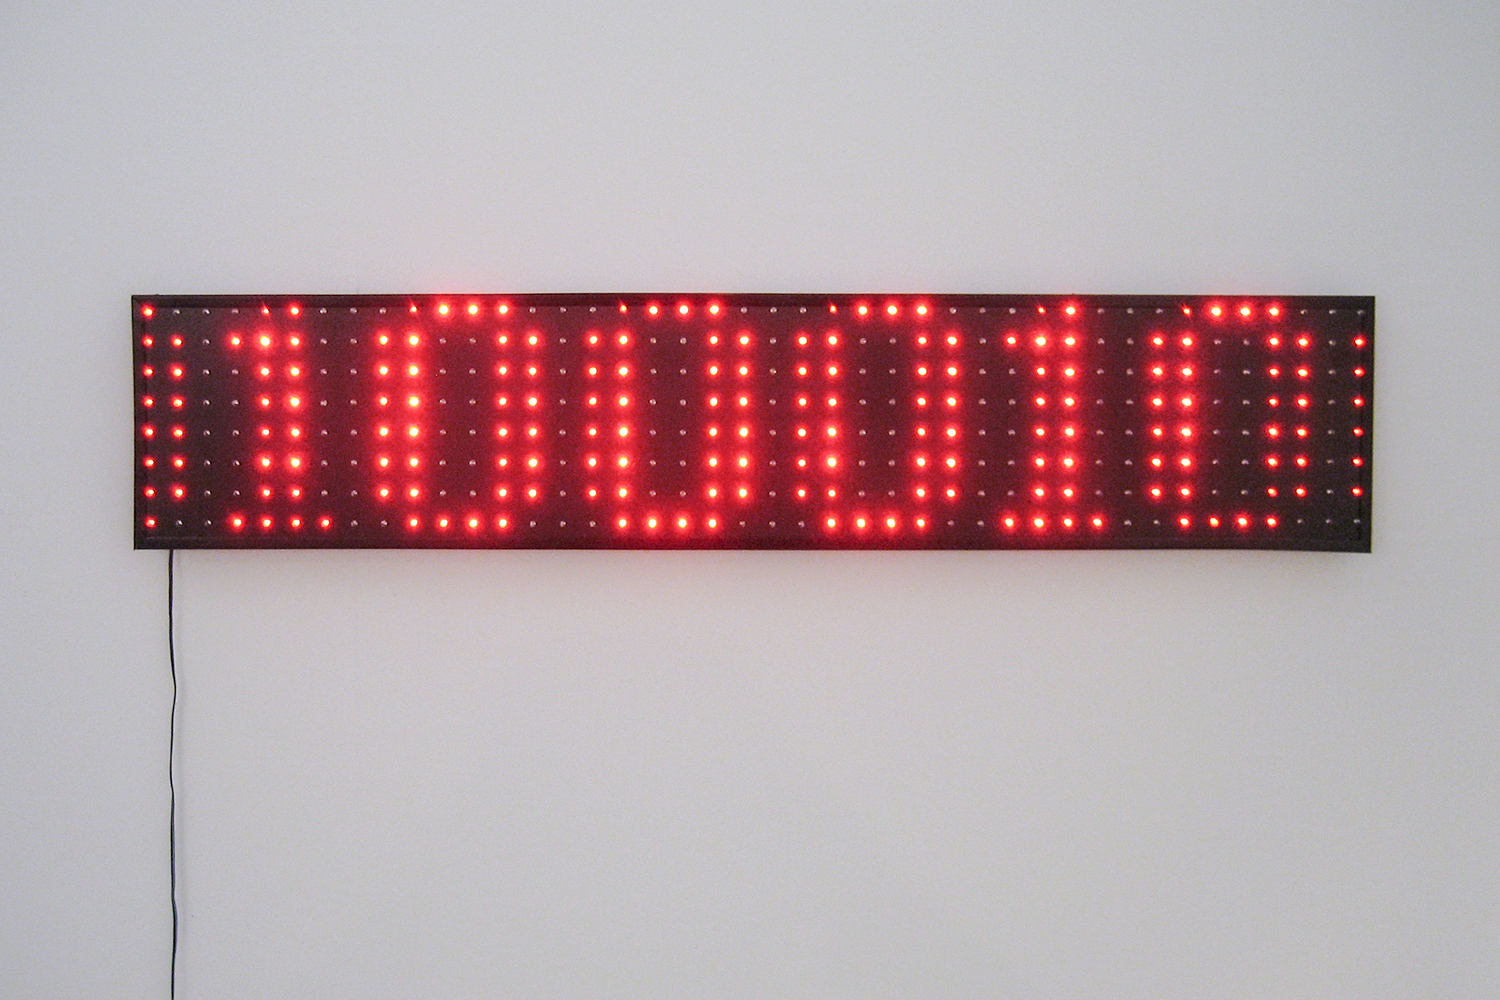 This One Isn't Either    •2006 •Decoded digital image on LED display, digital image on website •7.87 x 43.13 in, 527 x 700 pixels